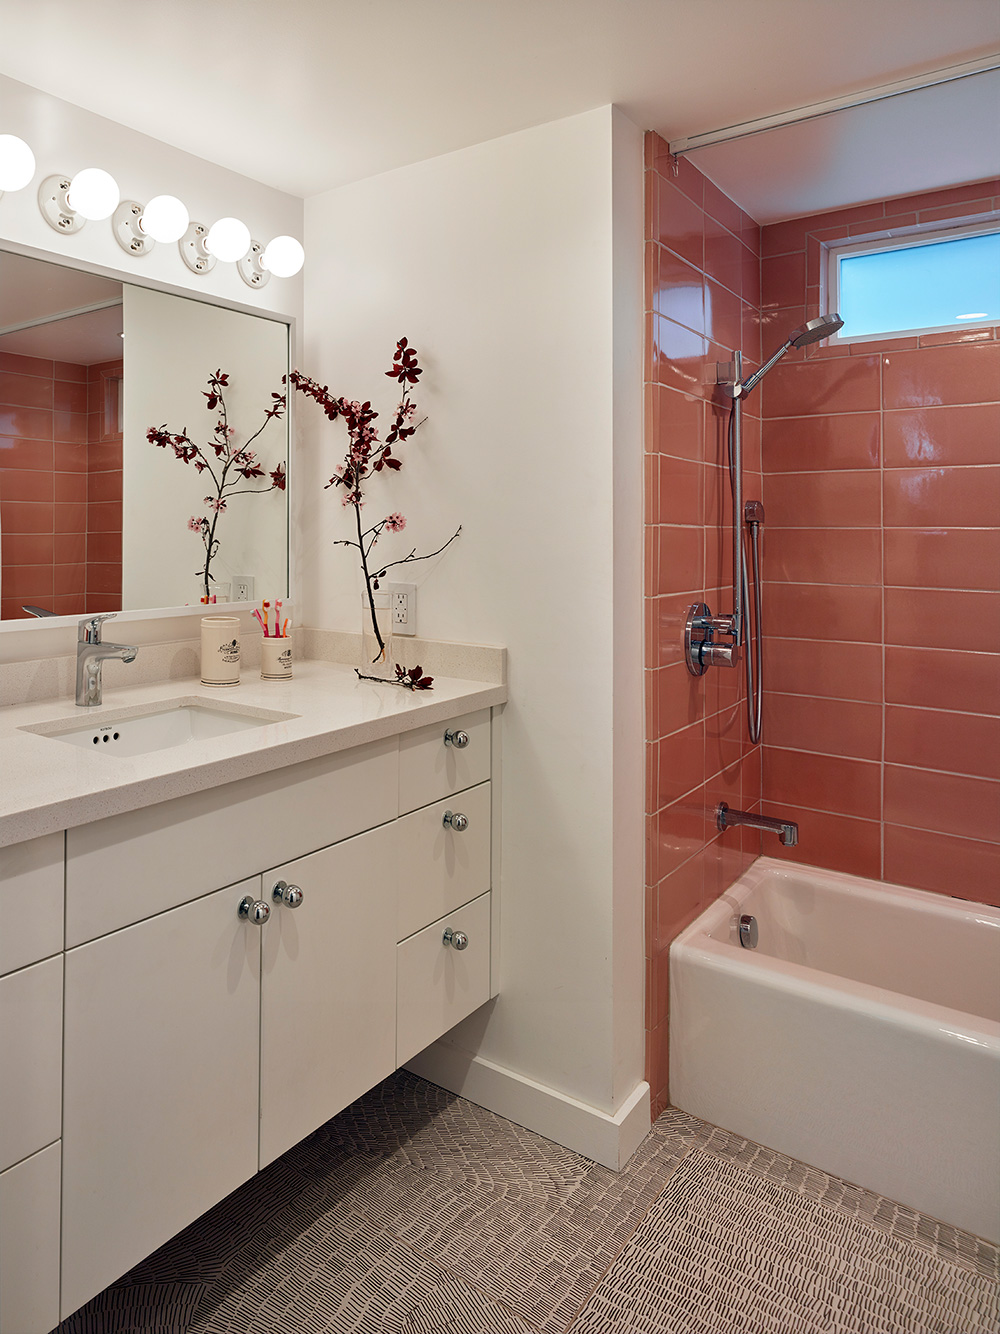 Colored ceramic, strategic finishes, and new lighting transform the bathroom in this 1970s California home